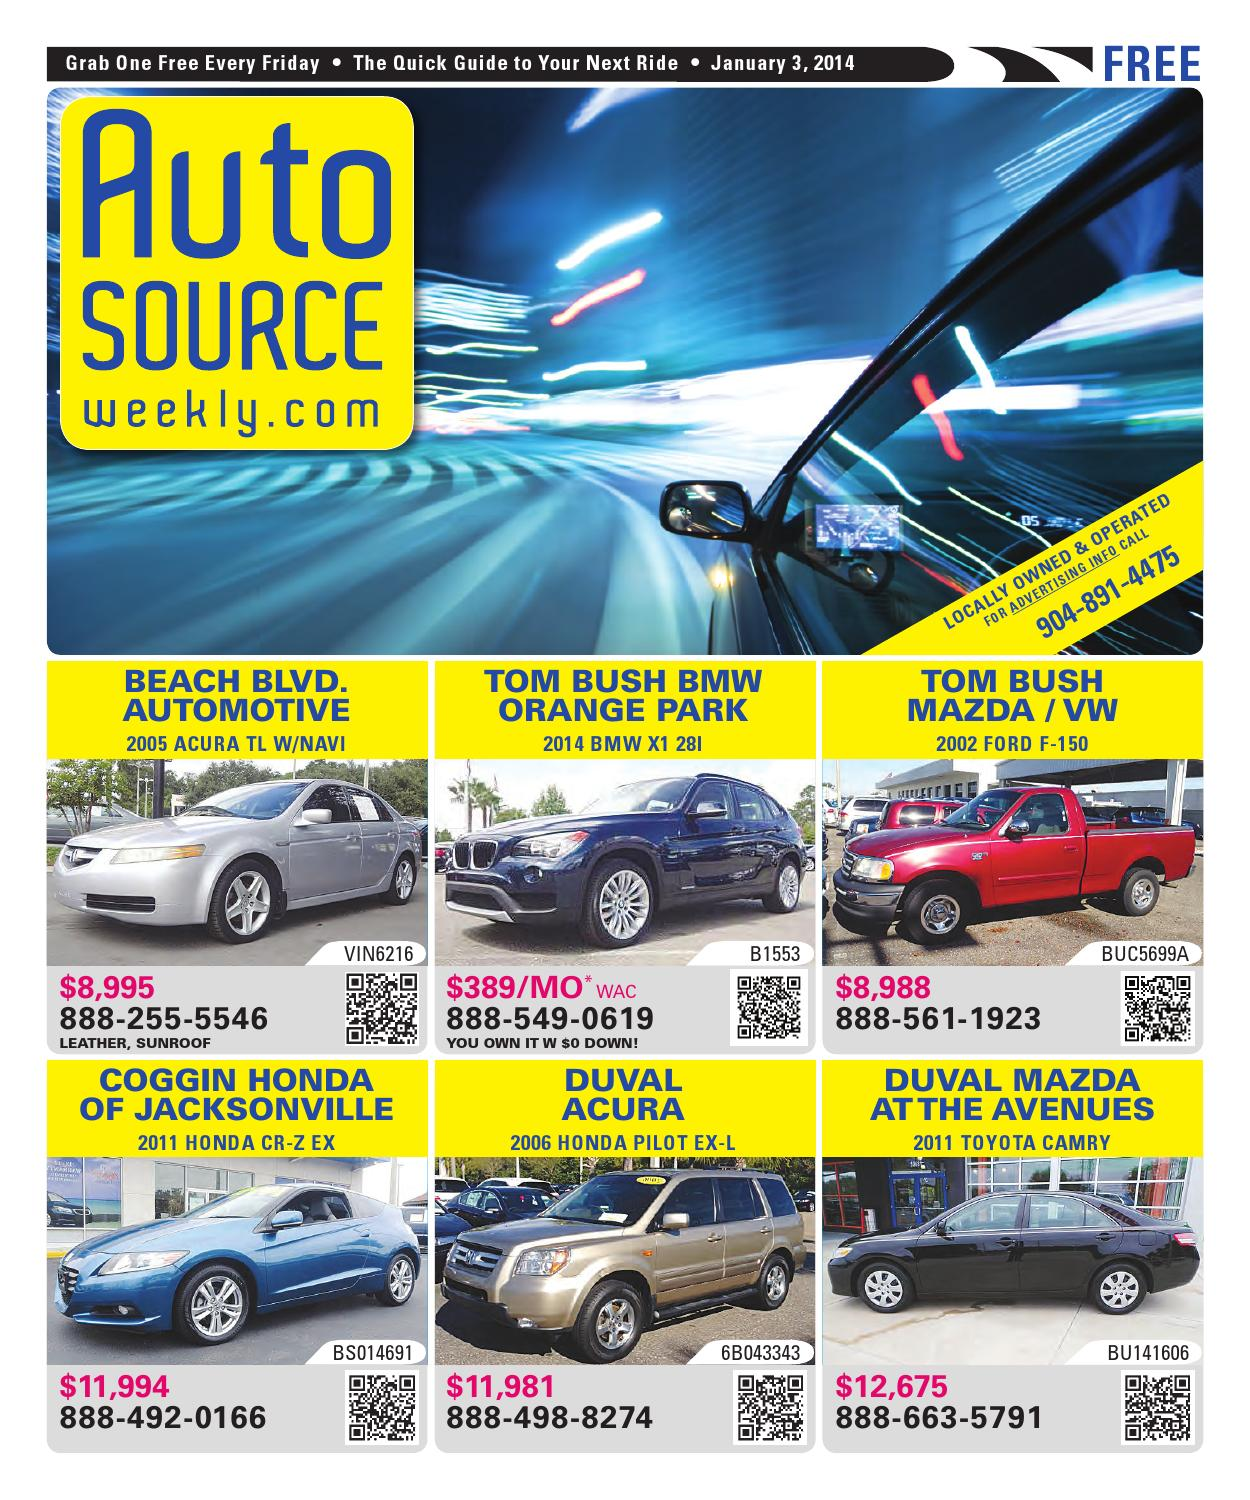 Tom Bush Vw >> Auto Source Weekly by Auto Source Weekly - Issuu